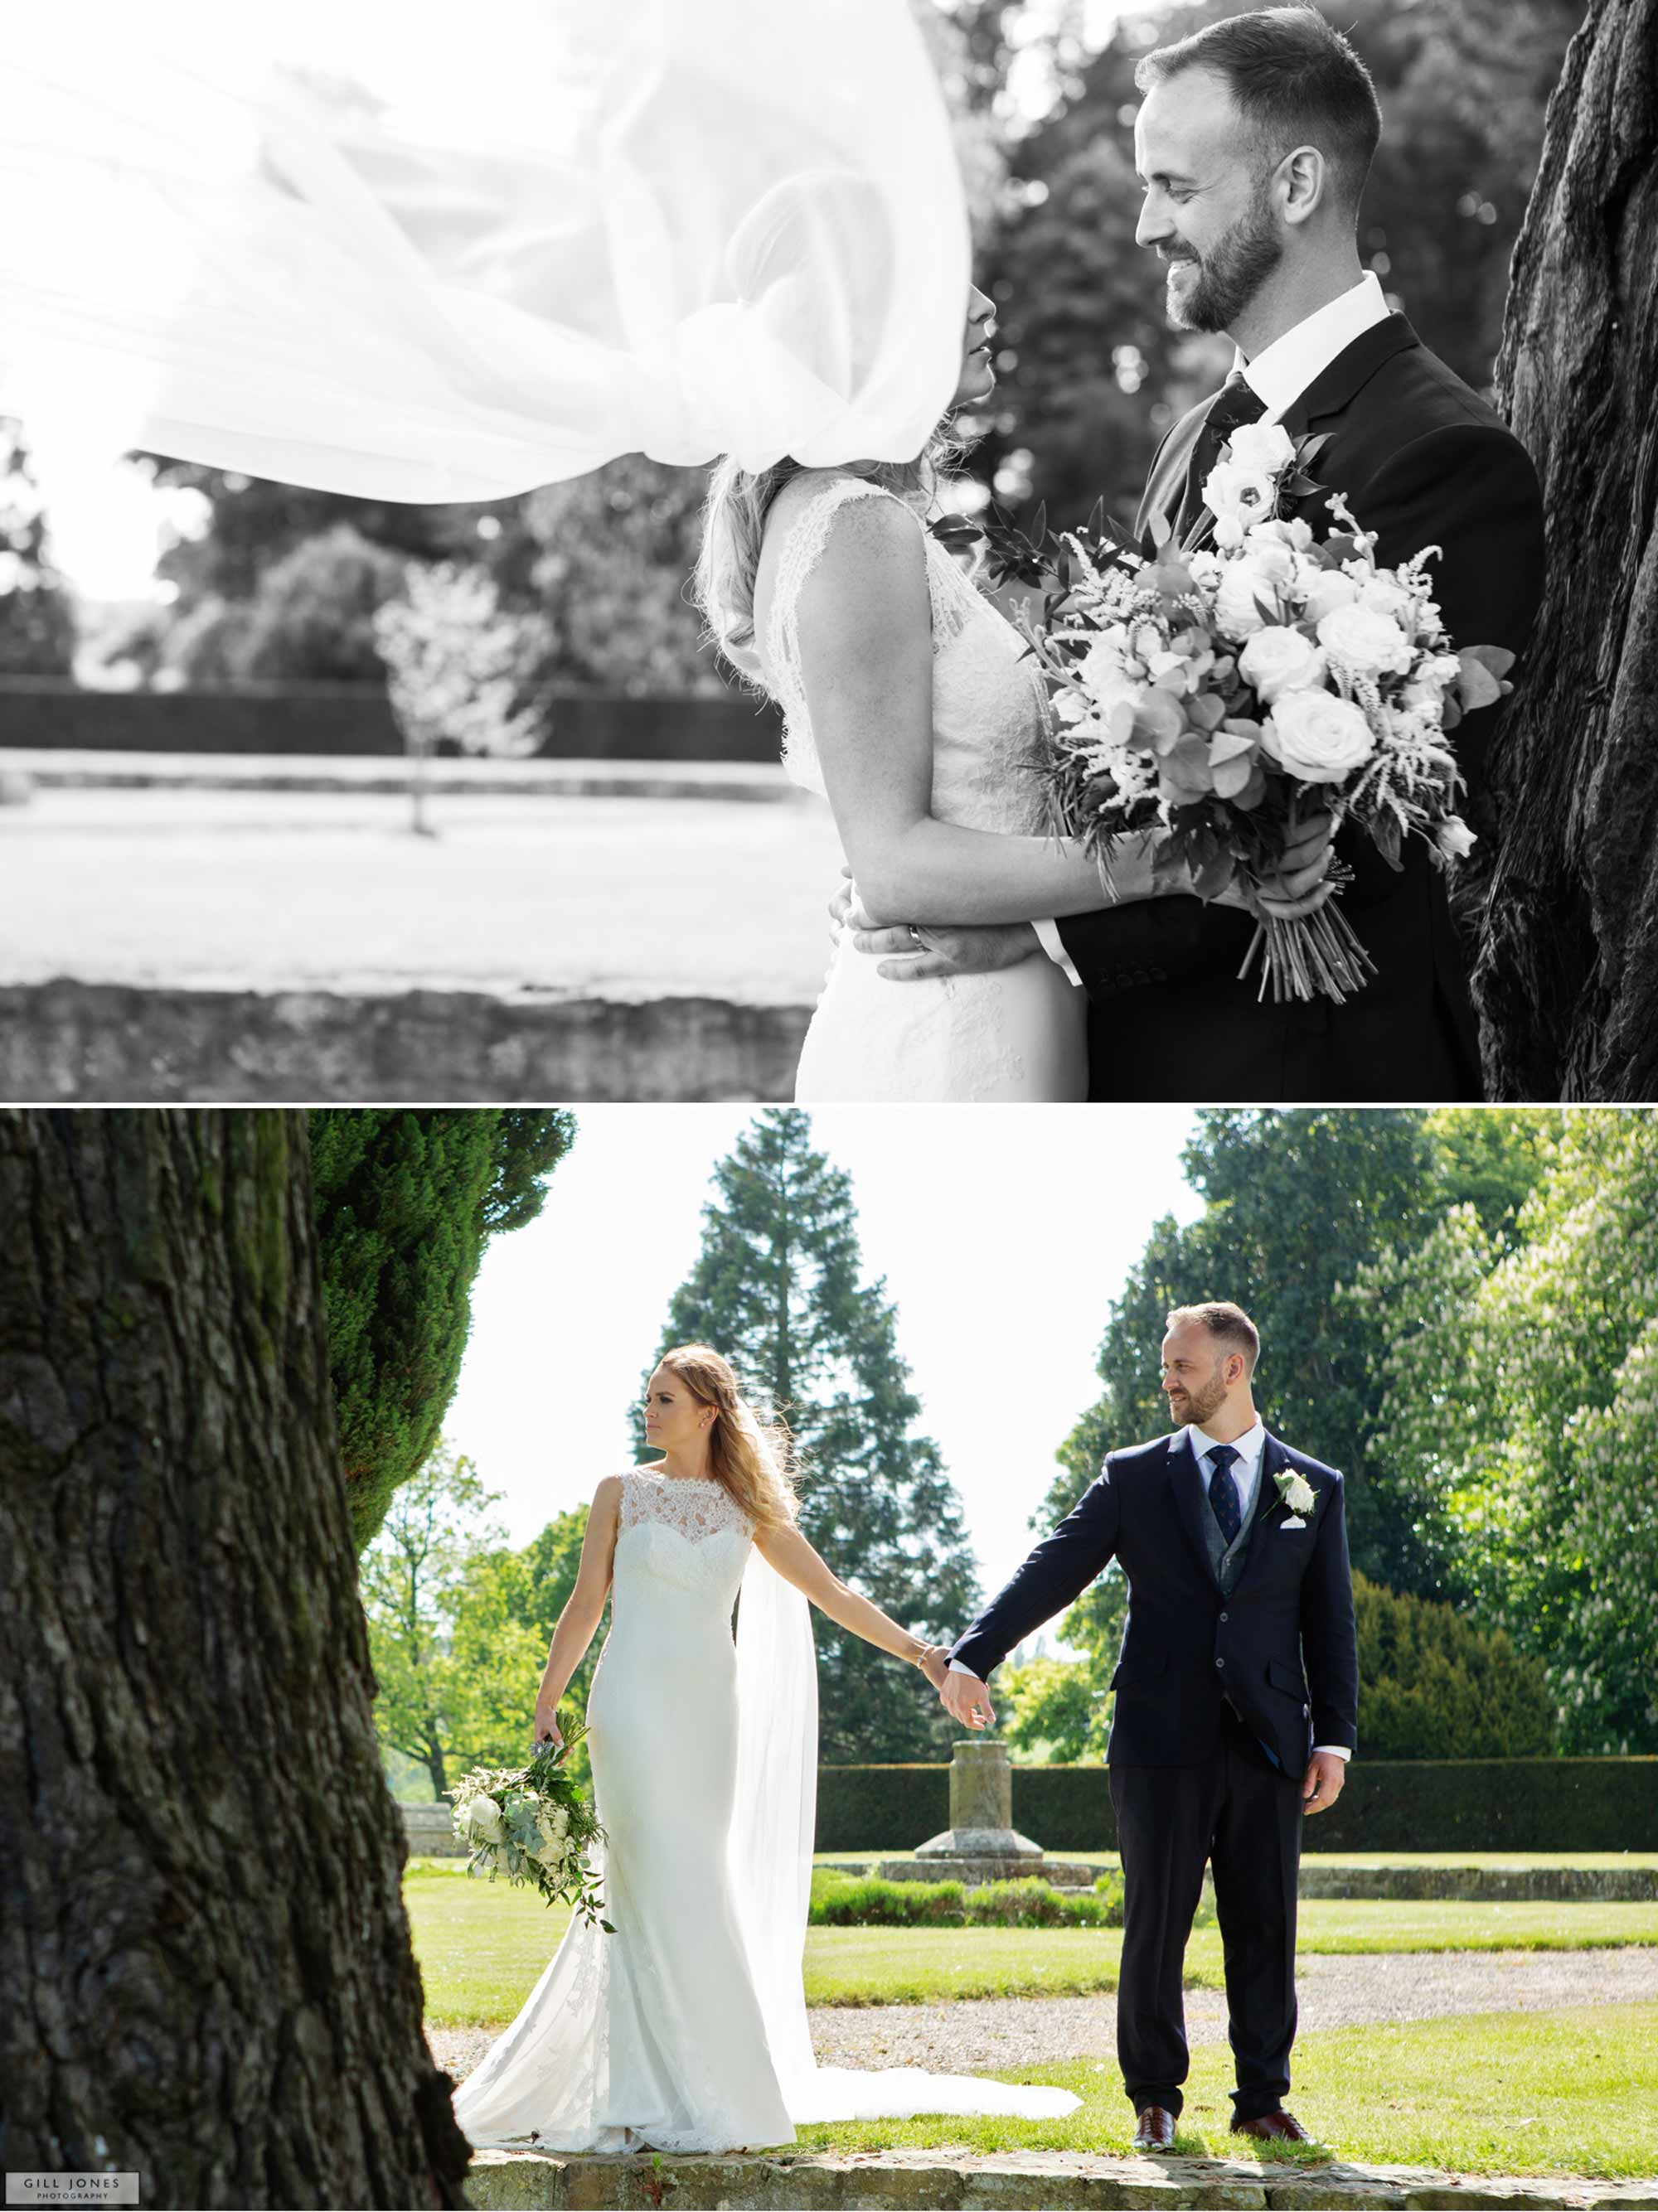 Pentrehobyn Hall wedding